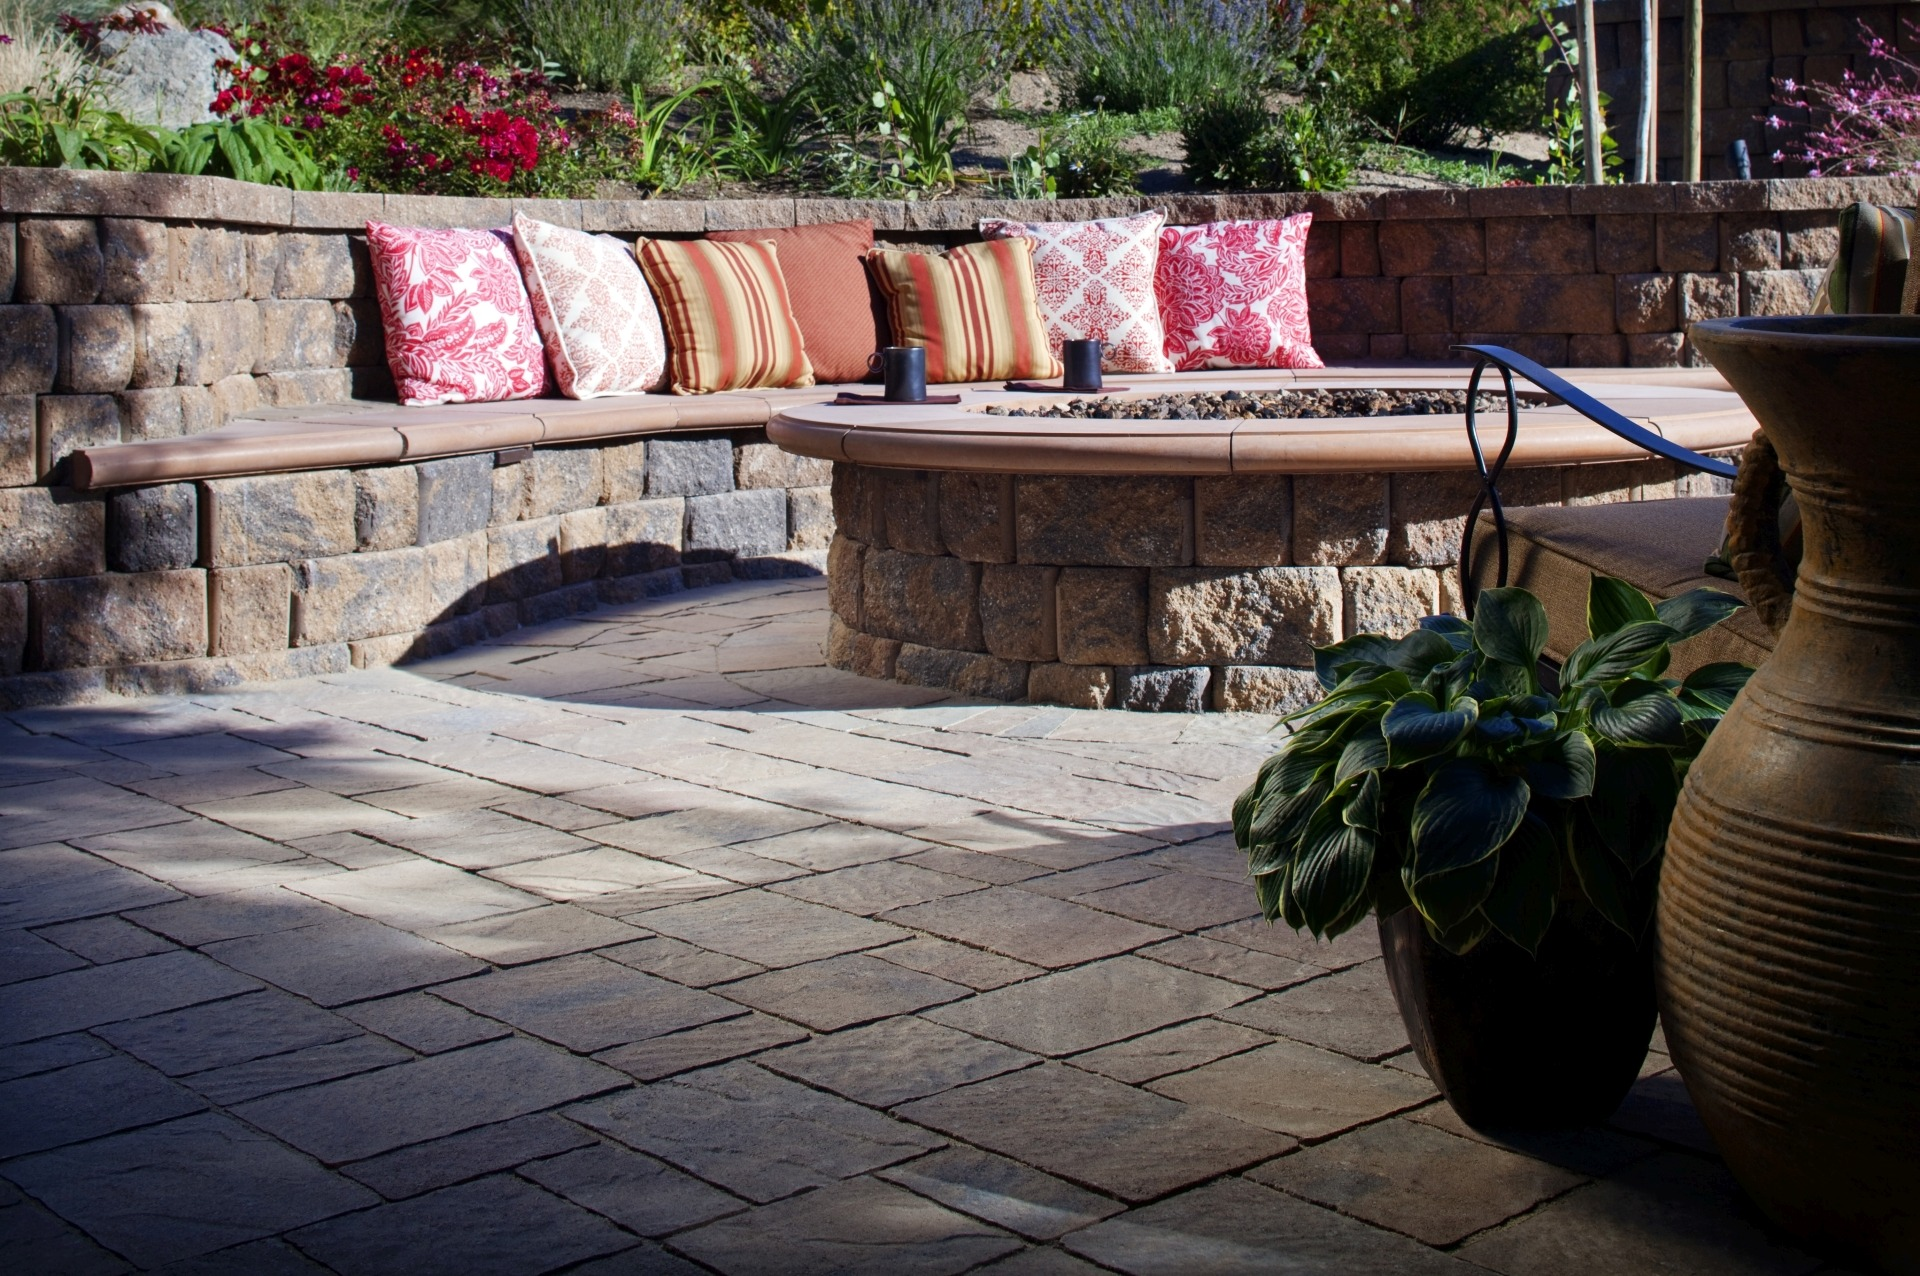 Paving Stone Patio with Fire Pit